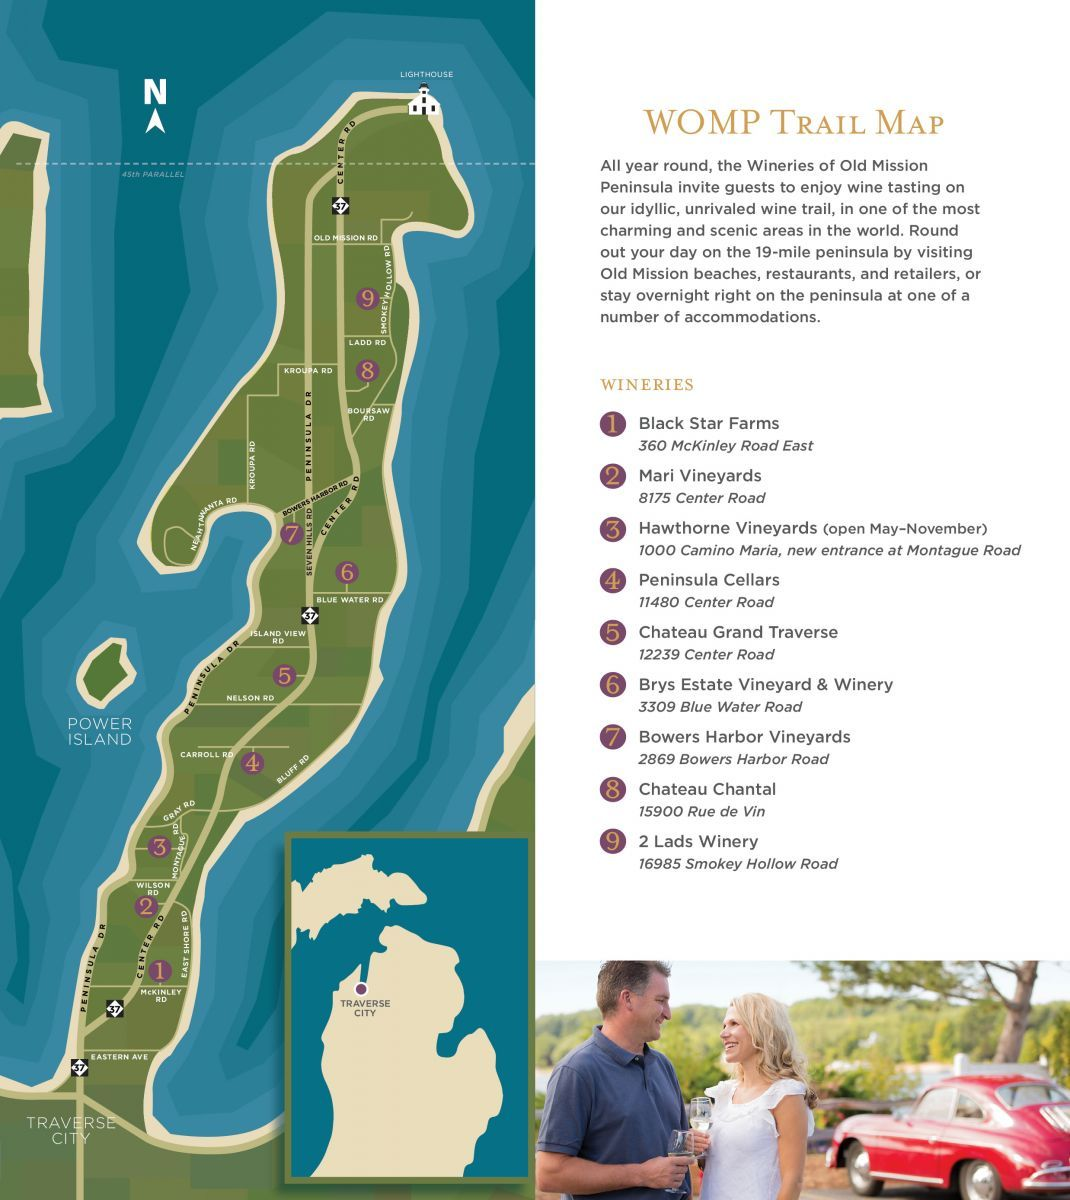 Wine Trail Map Wineries Of Old Mission Peninsula Traverse City Wineries Wine Tasting Wine Trail